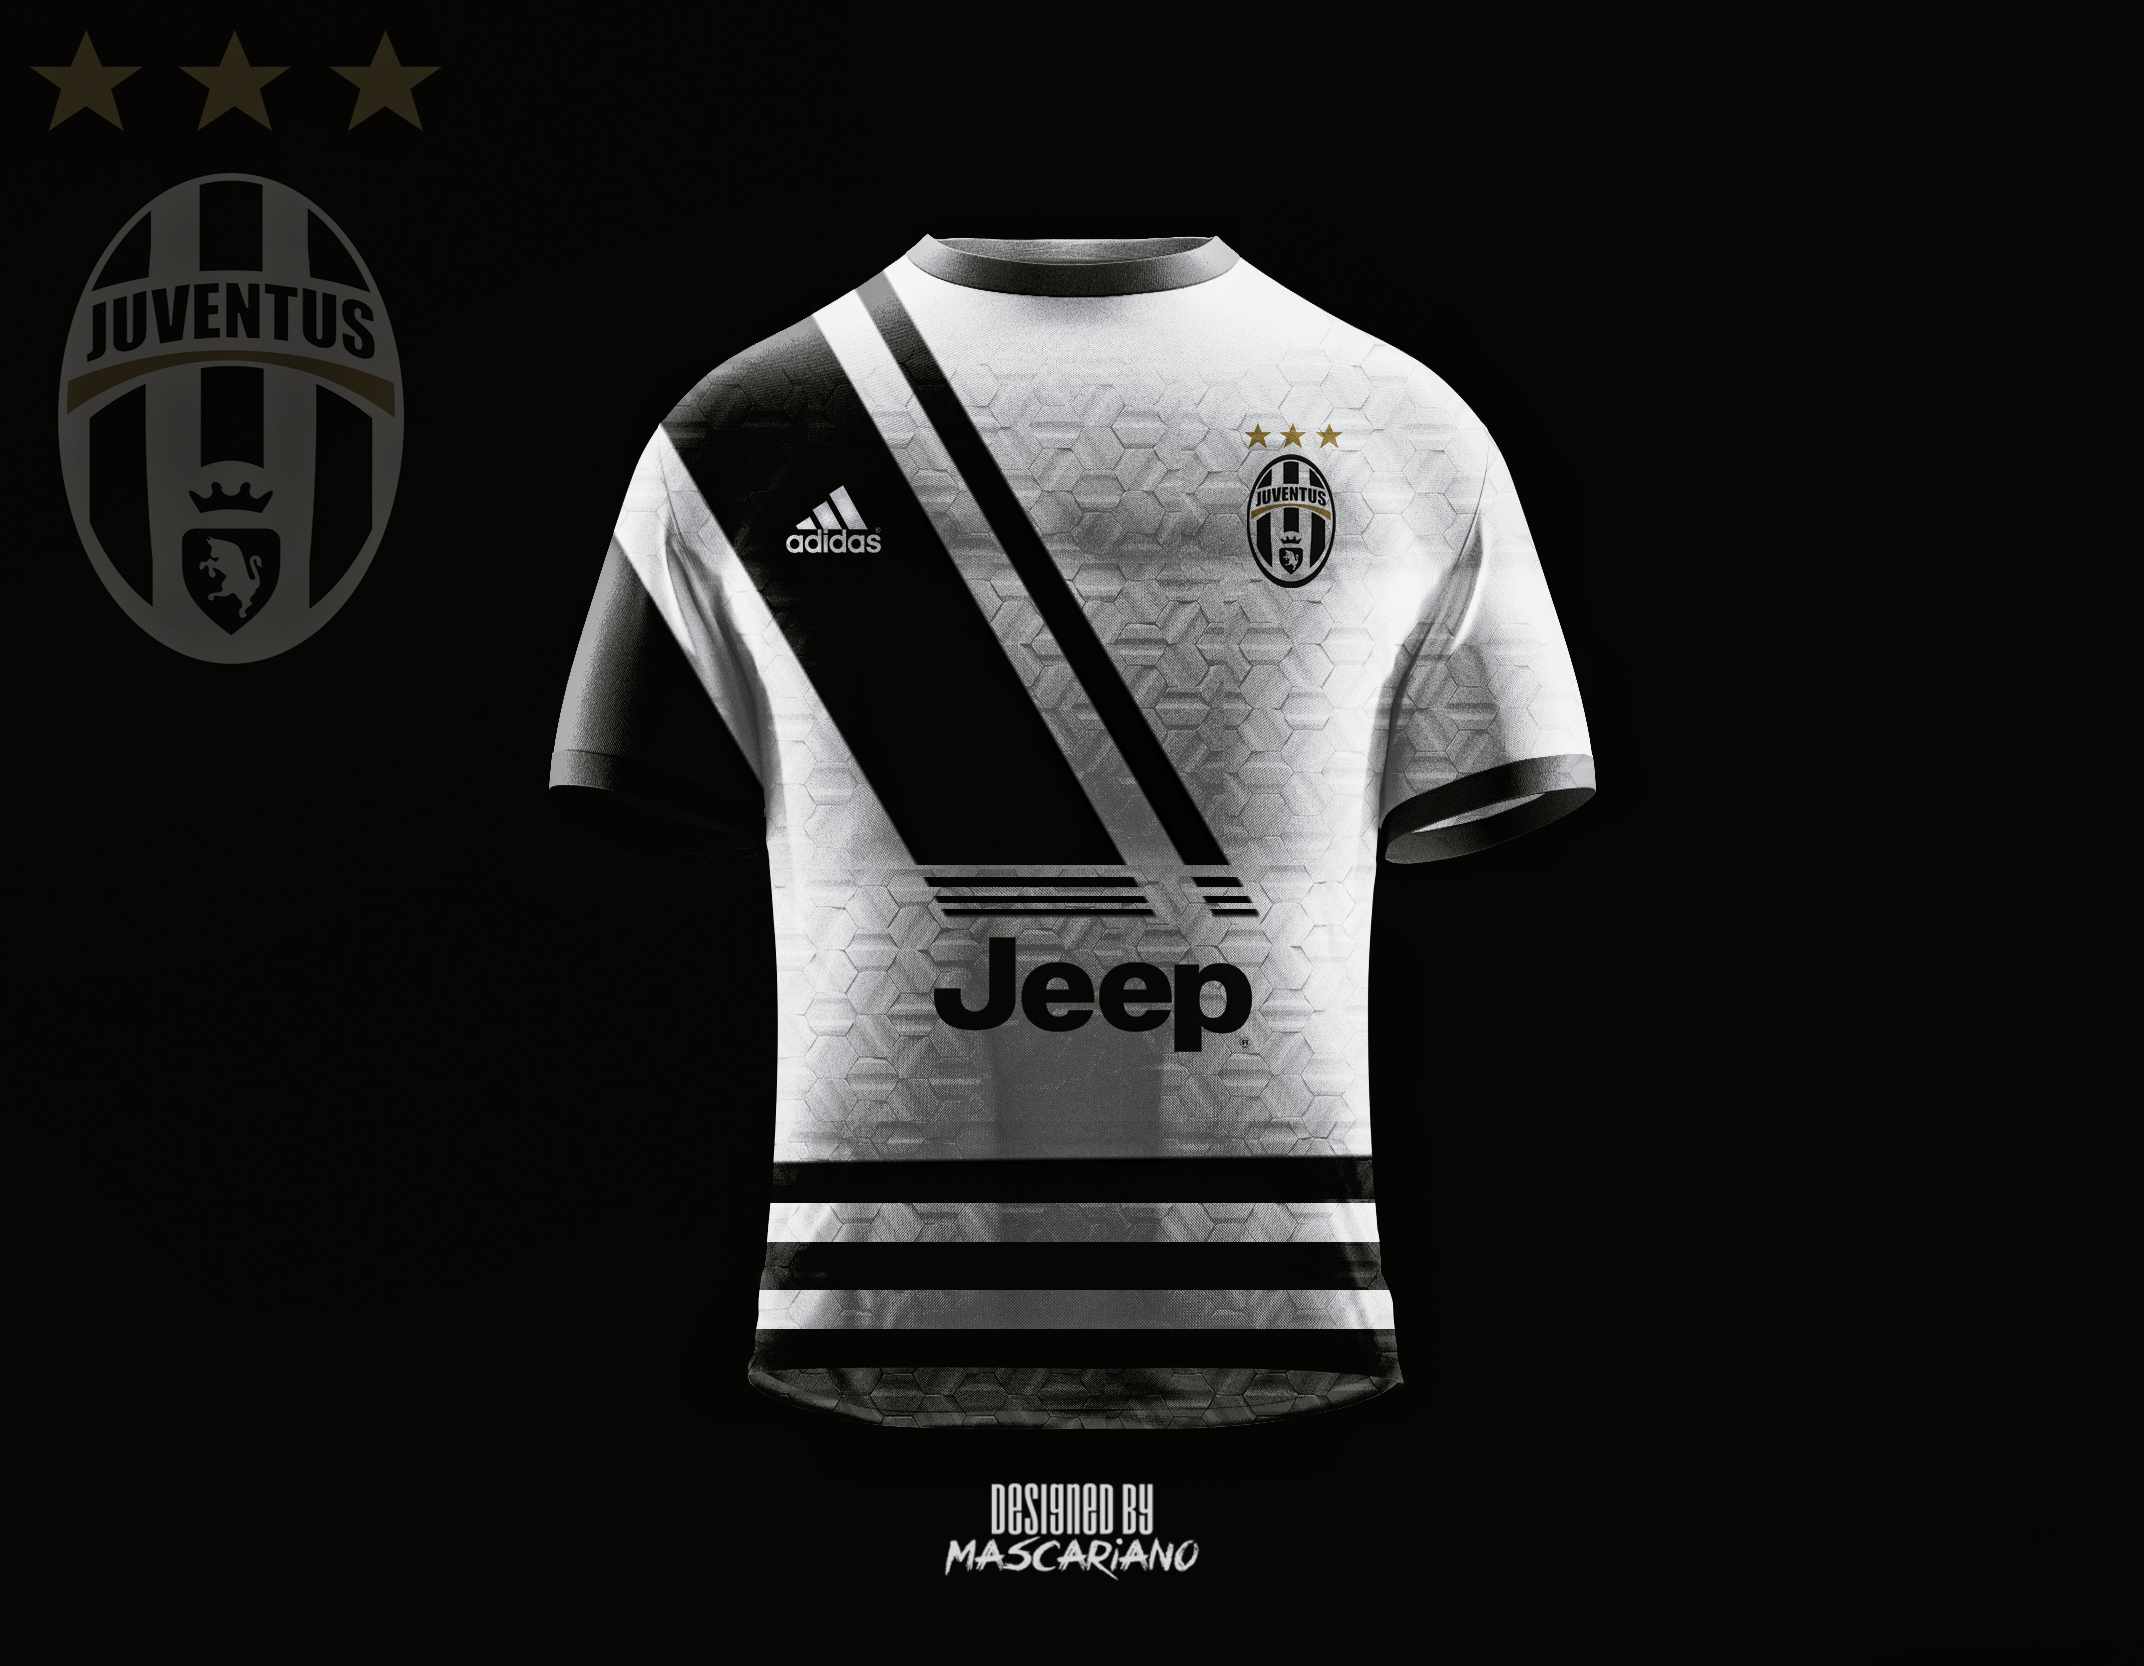 separation shoes 29ce1 e08c5 Juventus Football Club 2018/2019 (Concept Kit) by Mascariano ...